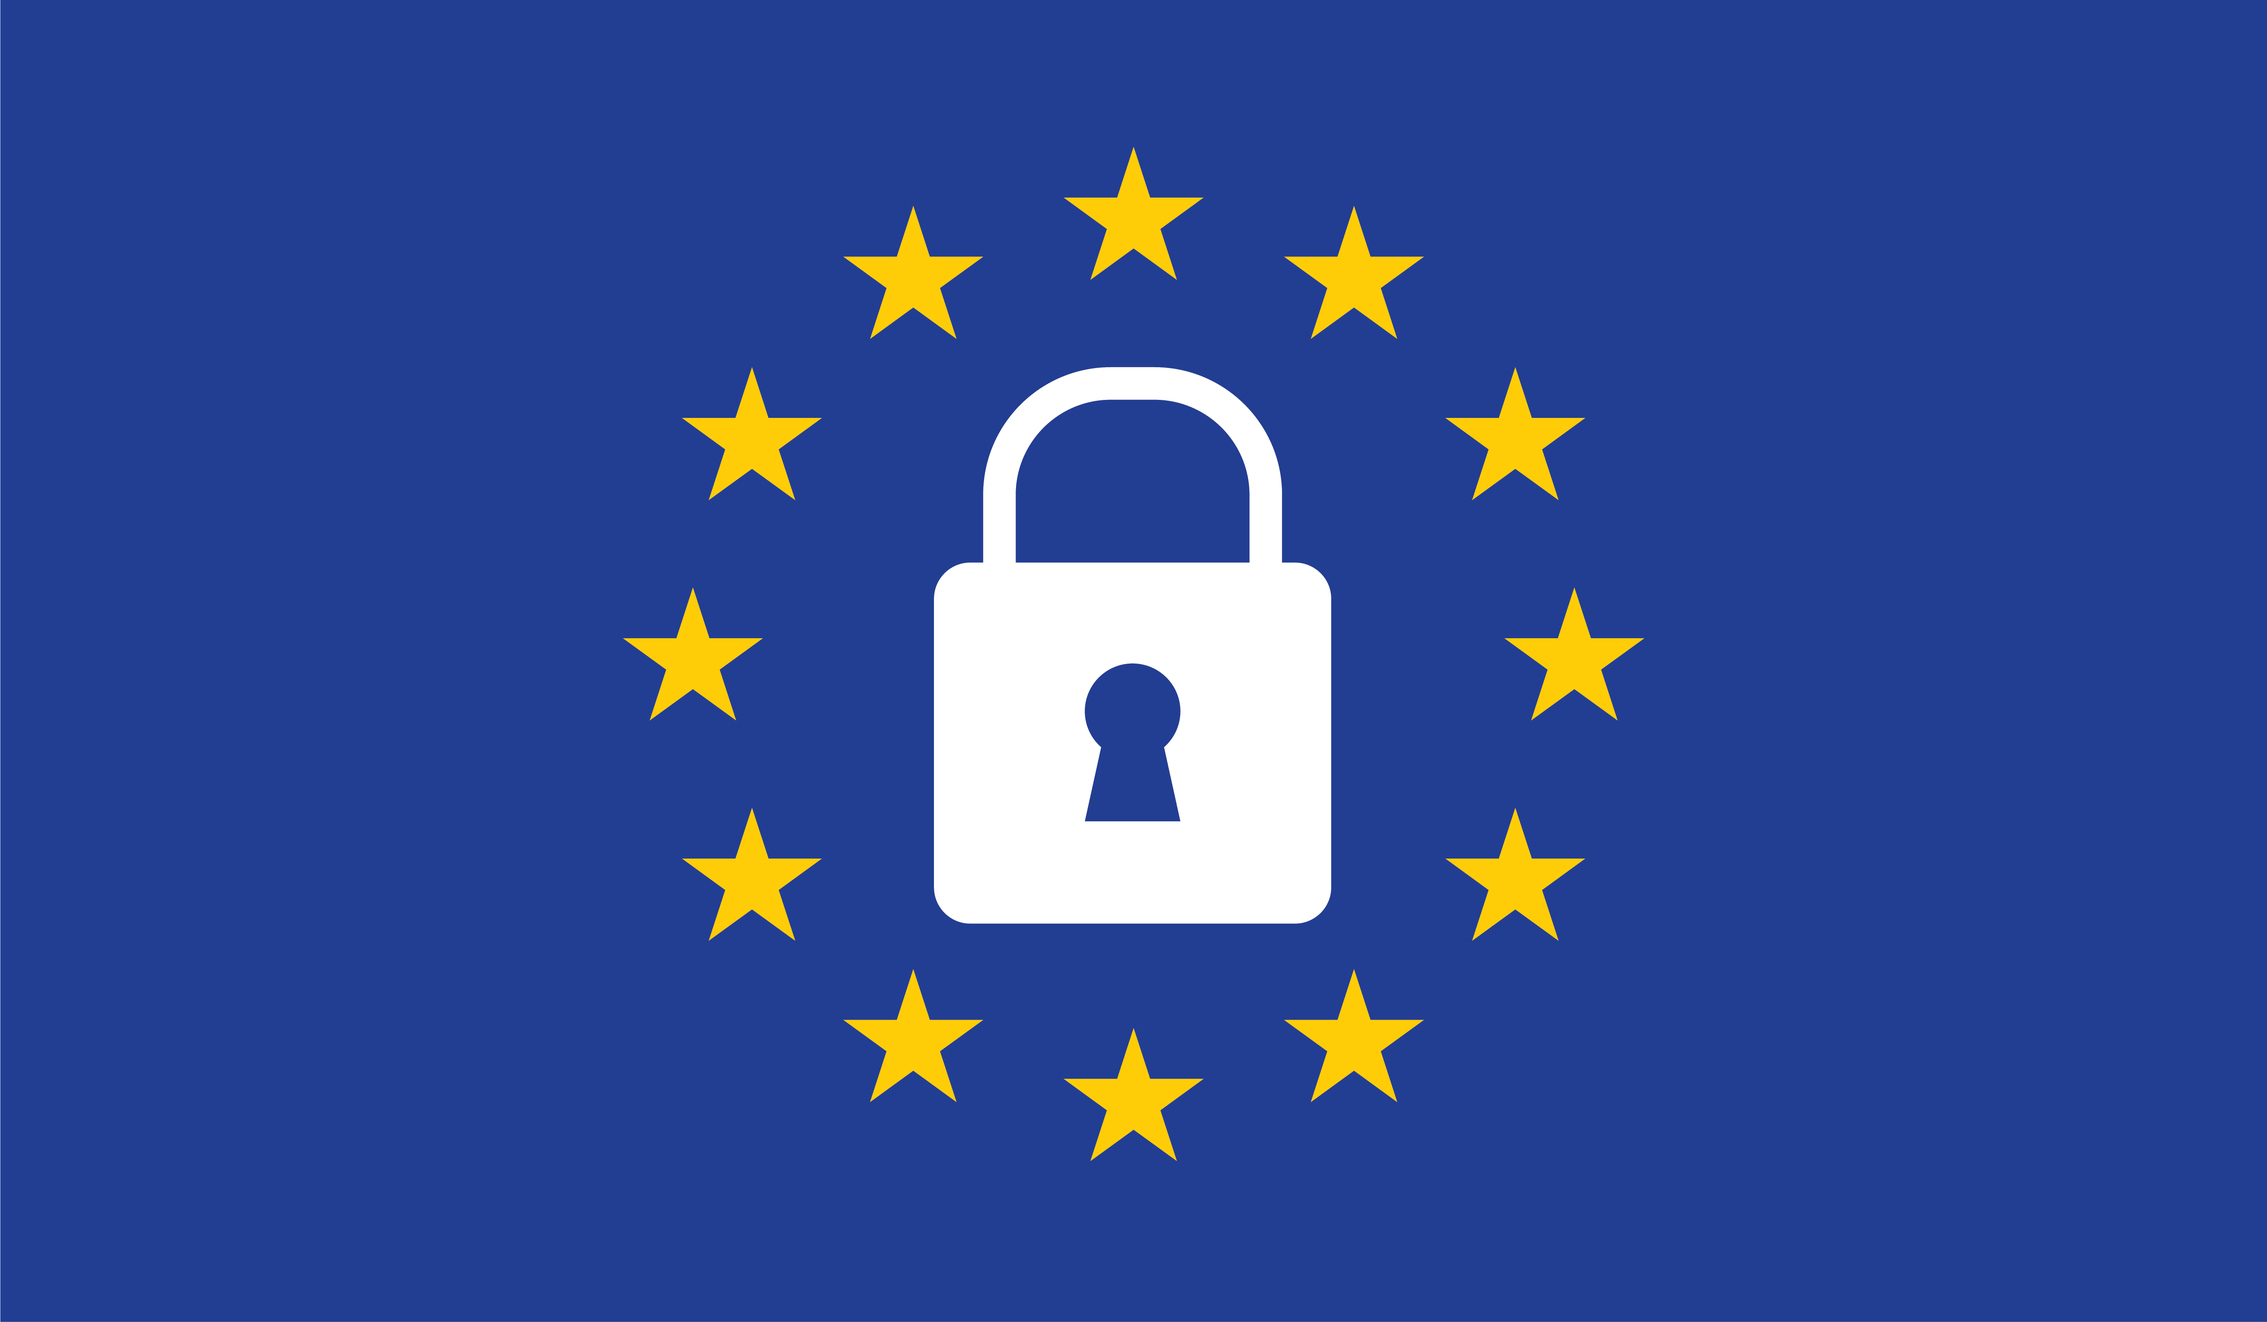 General Data Protection Regulation (GDPR) padlock